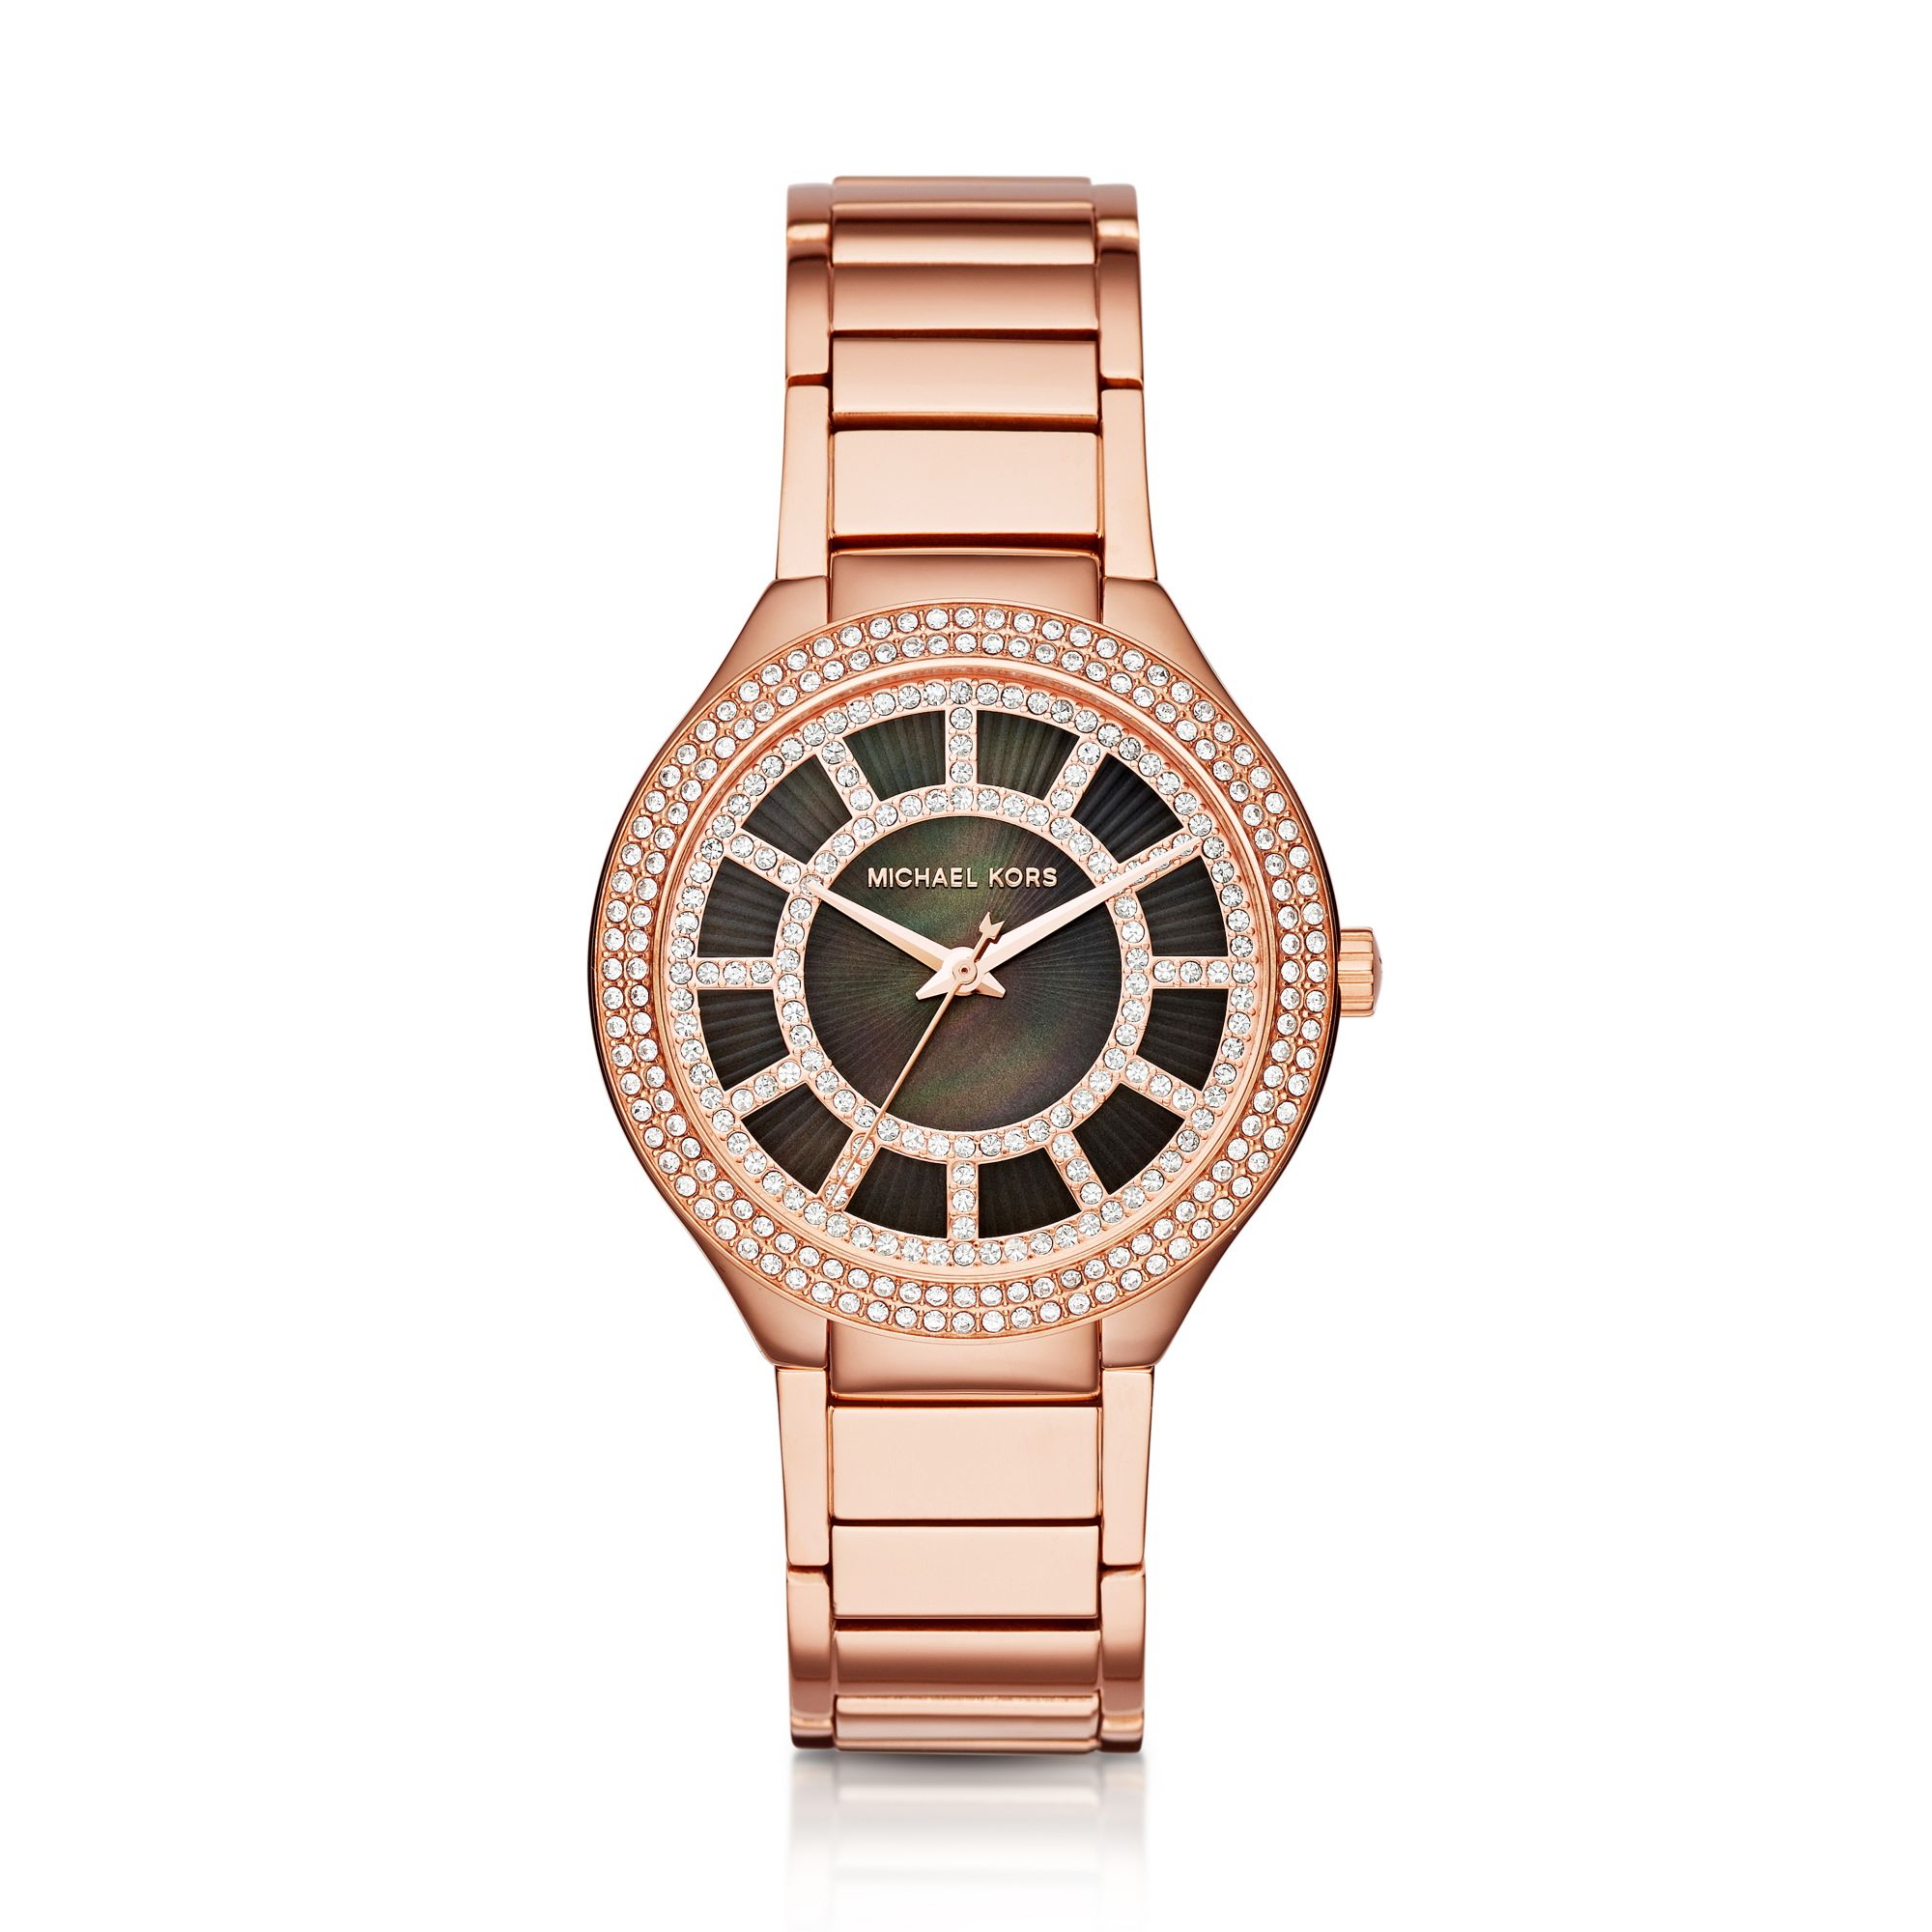 Lyst - Michael Kors Kerry Rose Gold-tone Watch in Pink